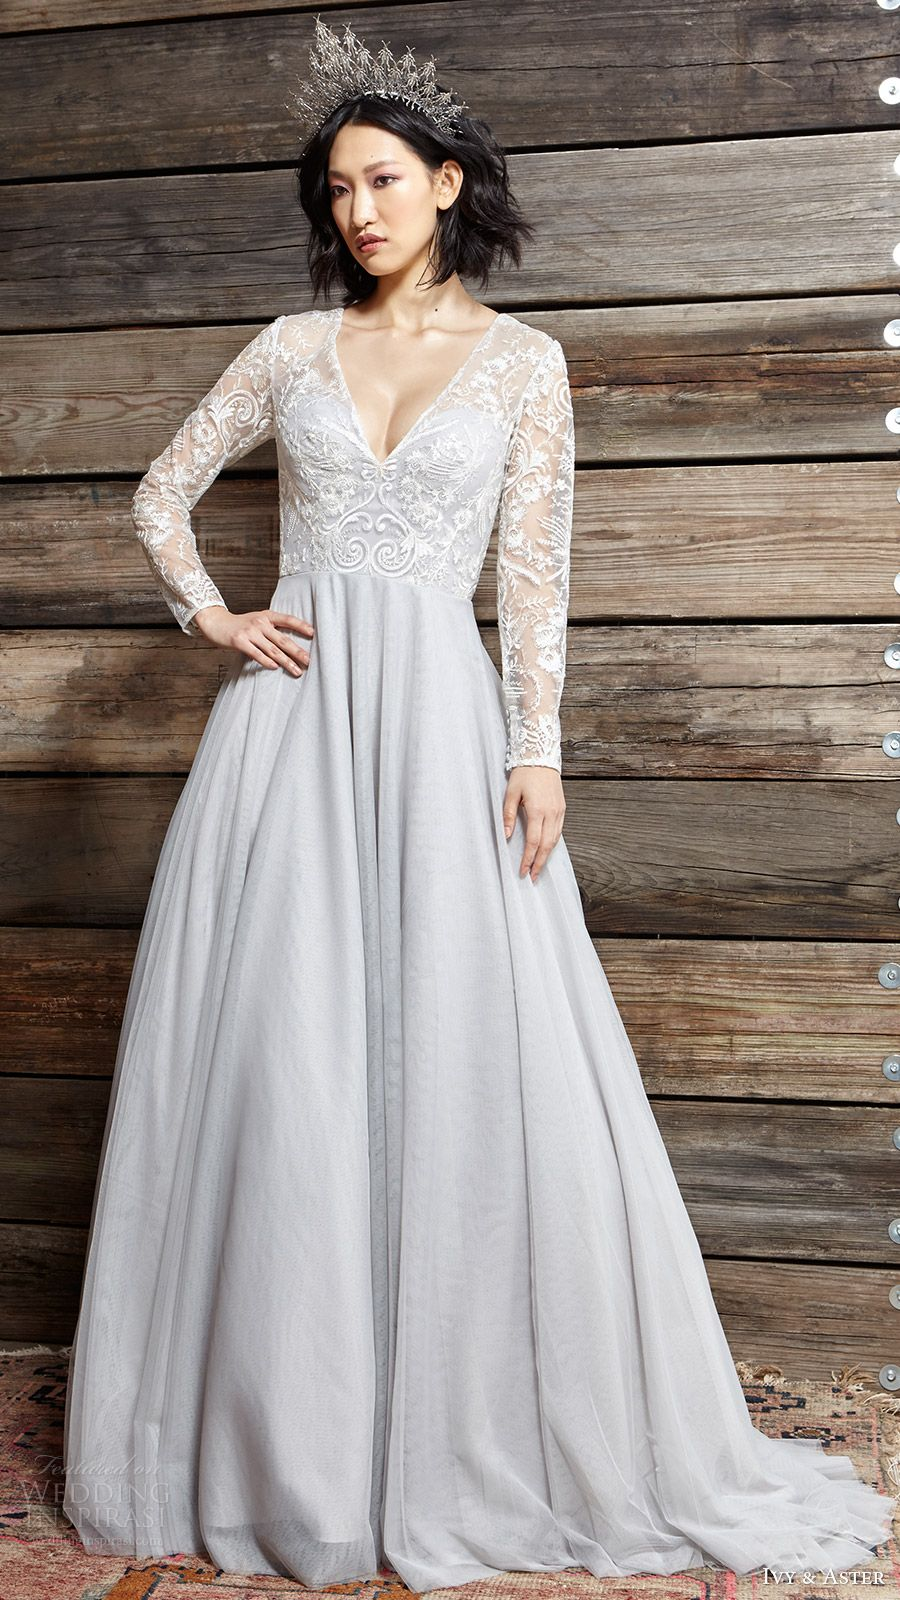 Aline wedding dress  Ivy u Aster Spring  Wedding Dresses u ucA Moment in Timeud Bridal